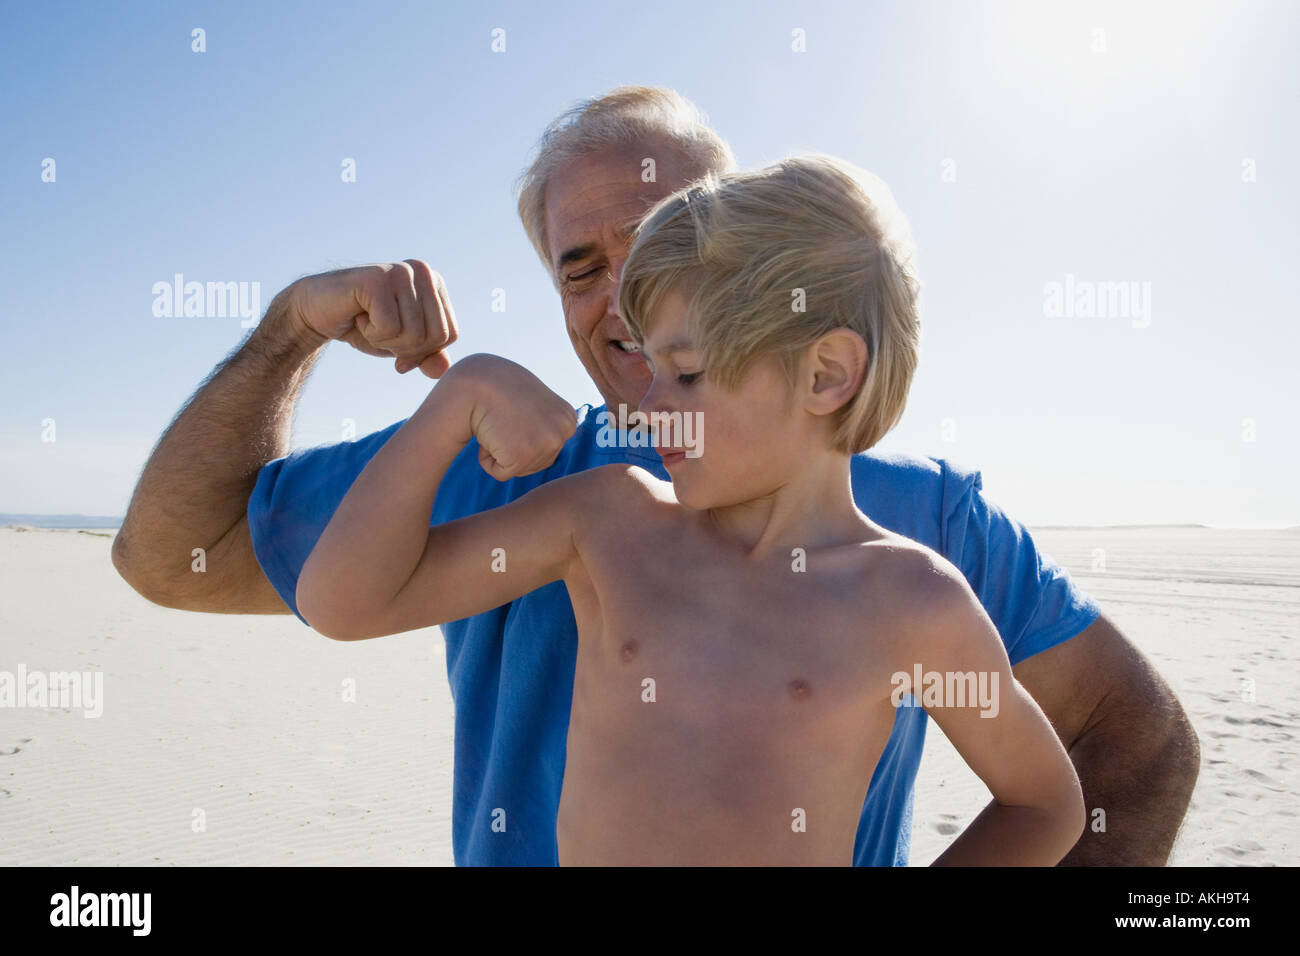 Grandfather and grandson flexing biceps on beach - Stock Image